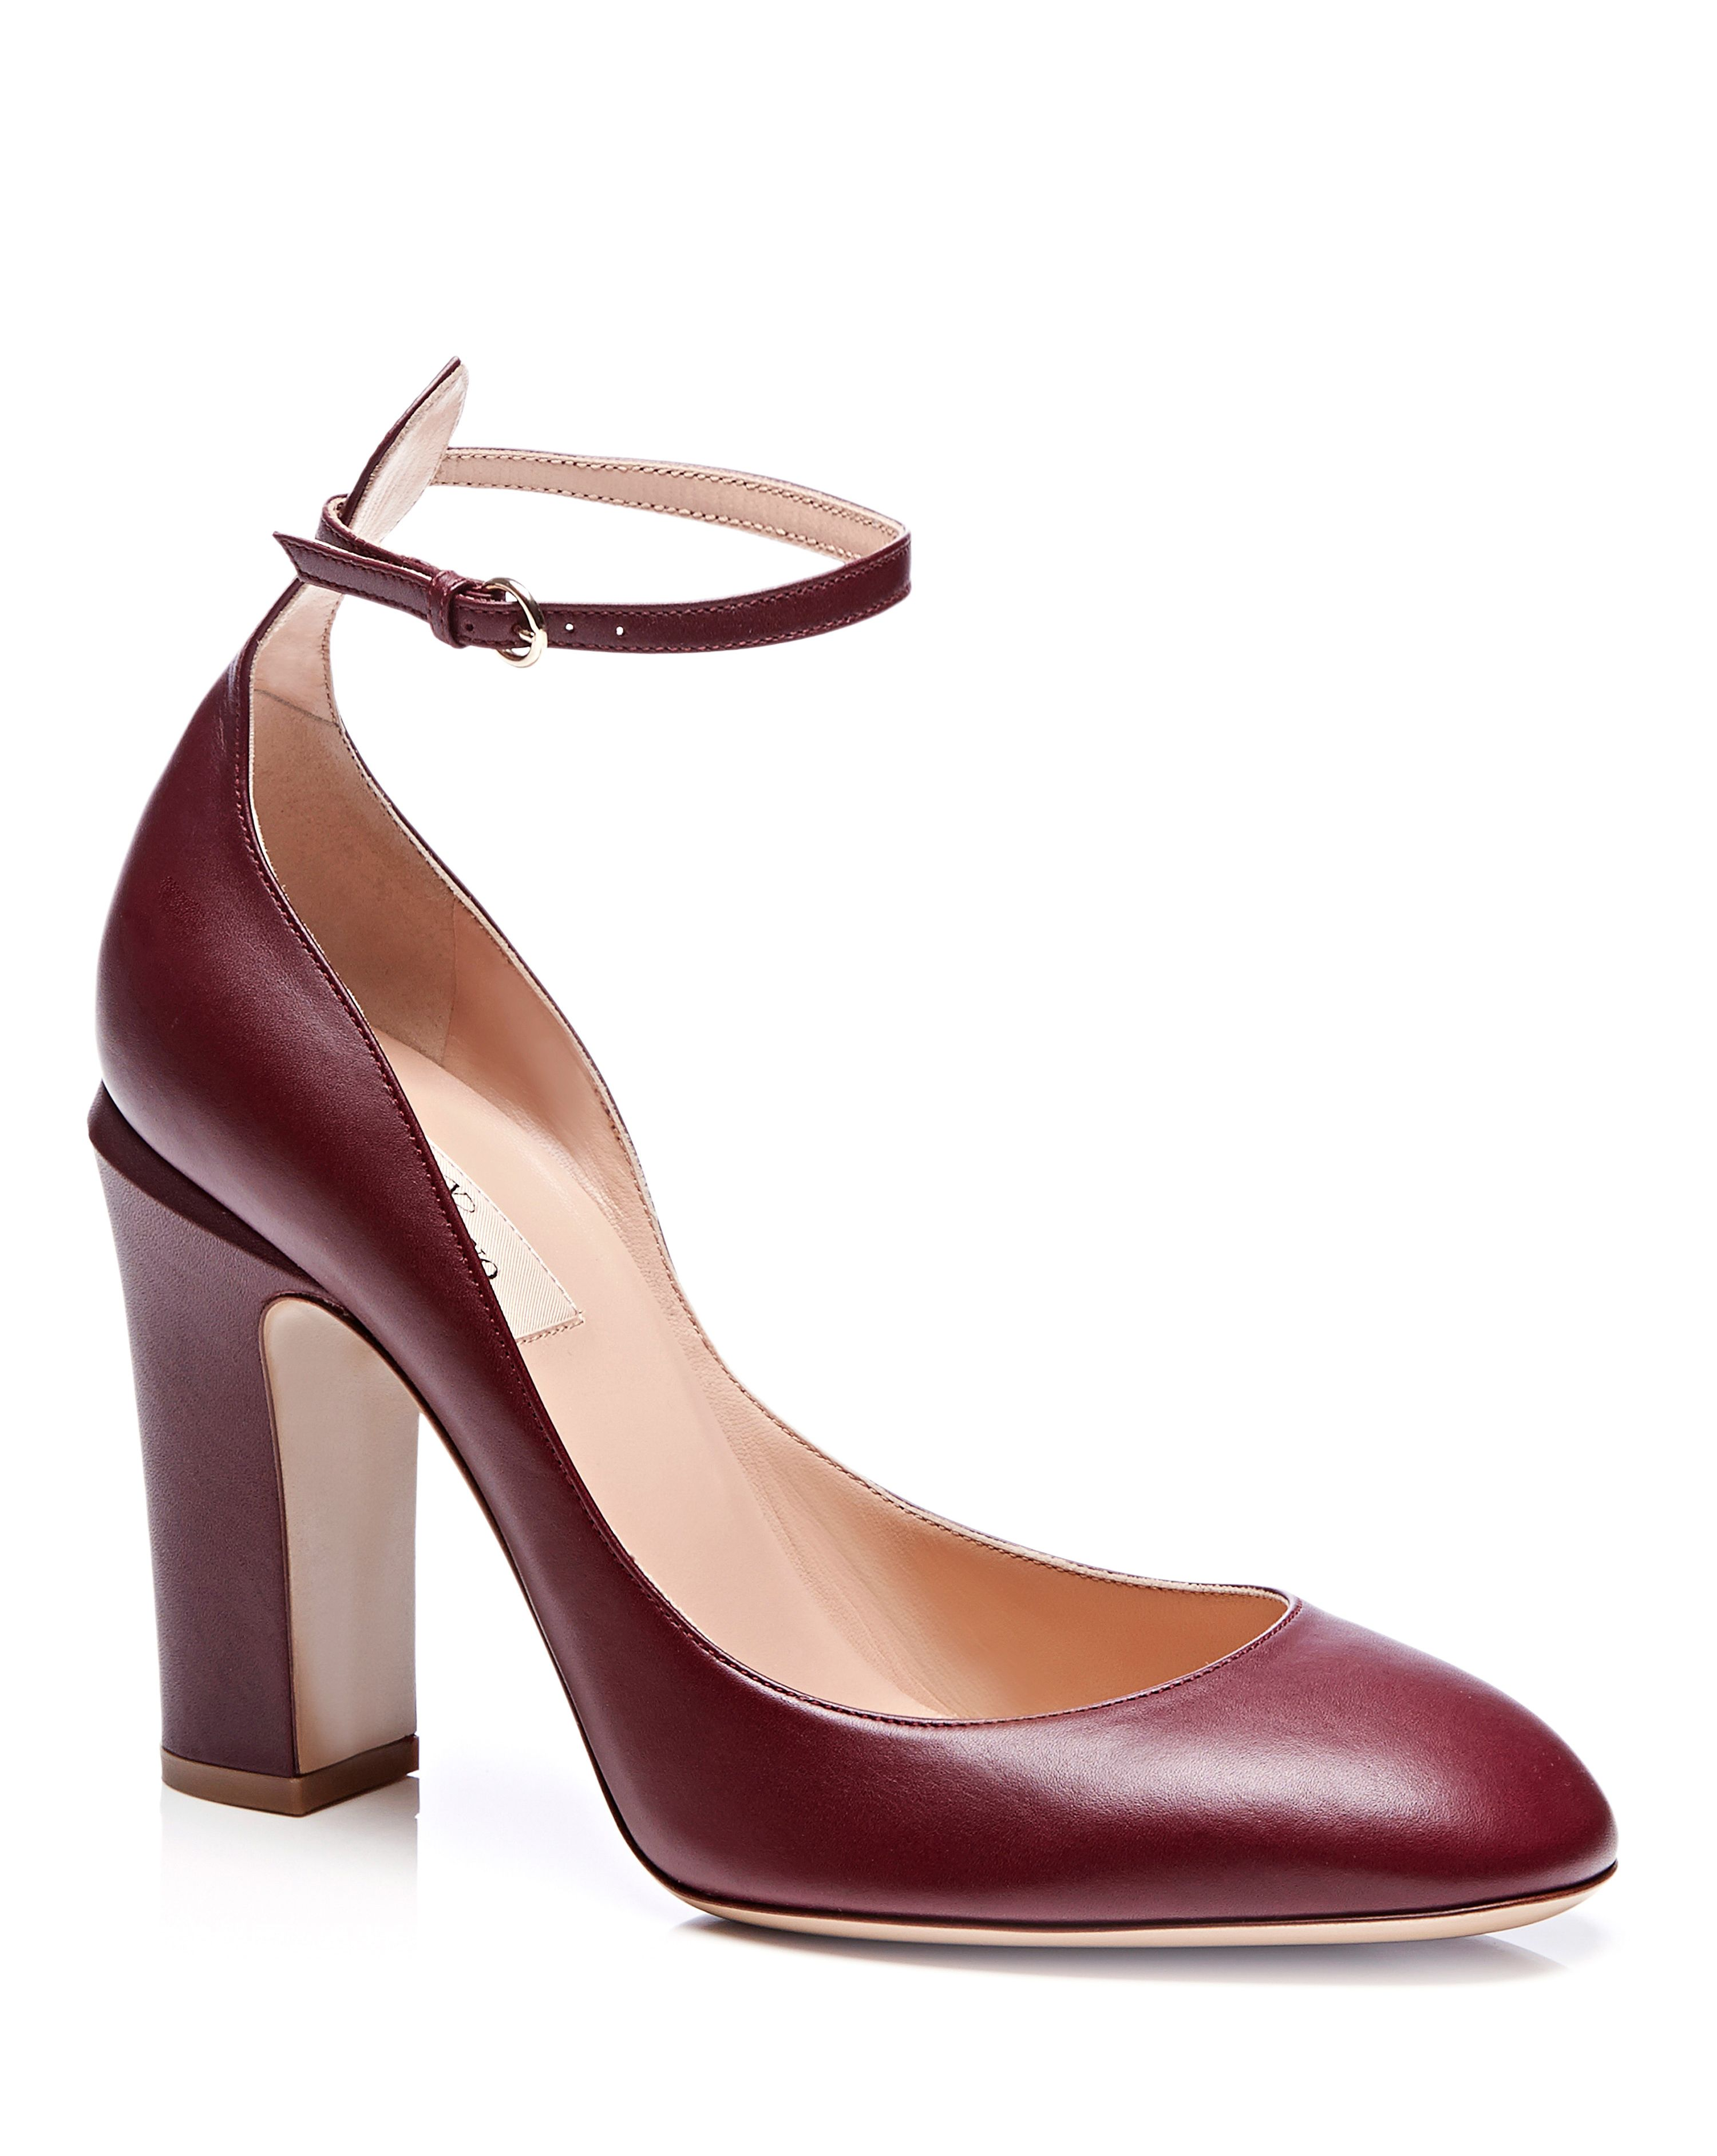 Valentino Tango Leather Mary-Jane Pumps | Wear to work | Pinterest ...